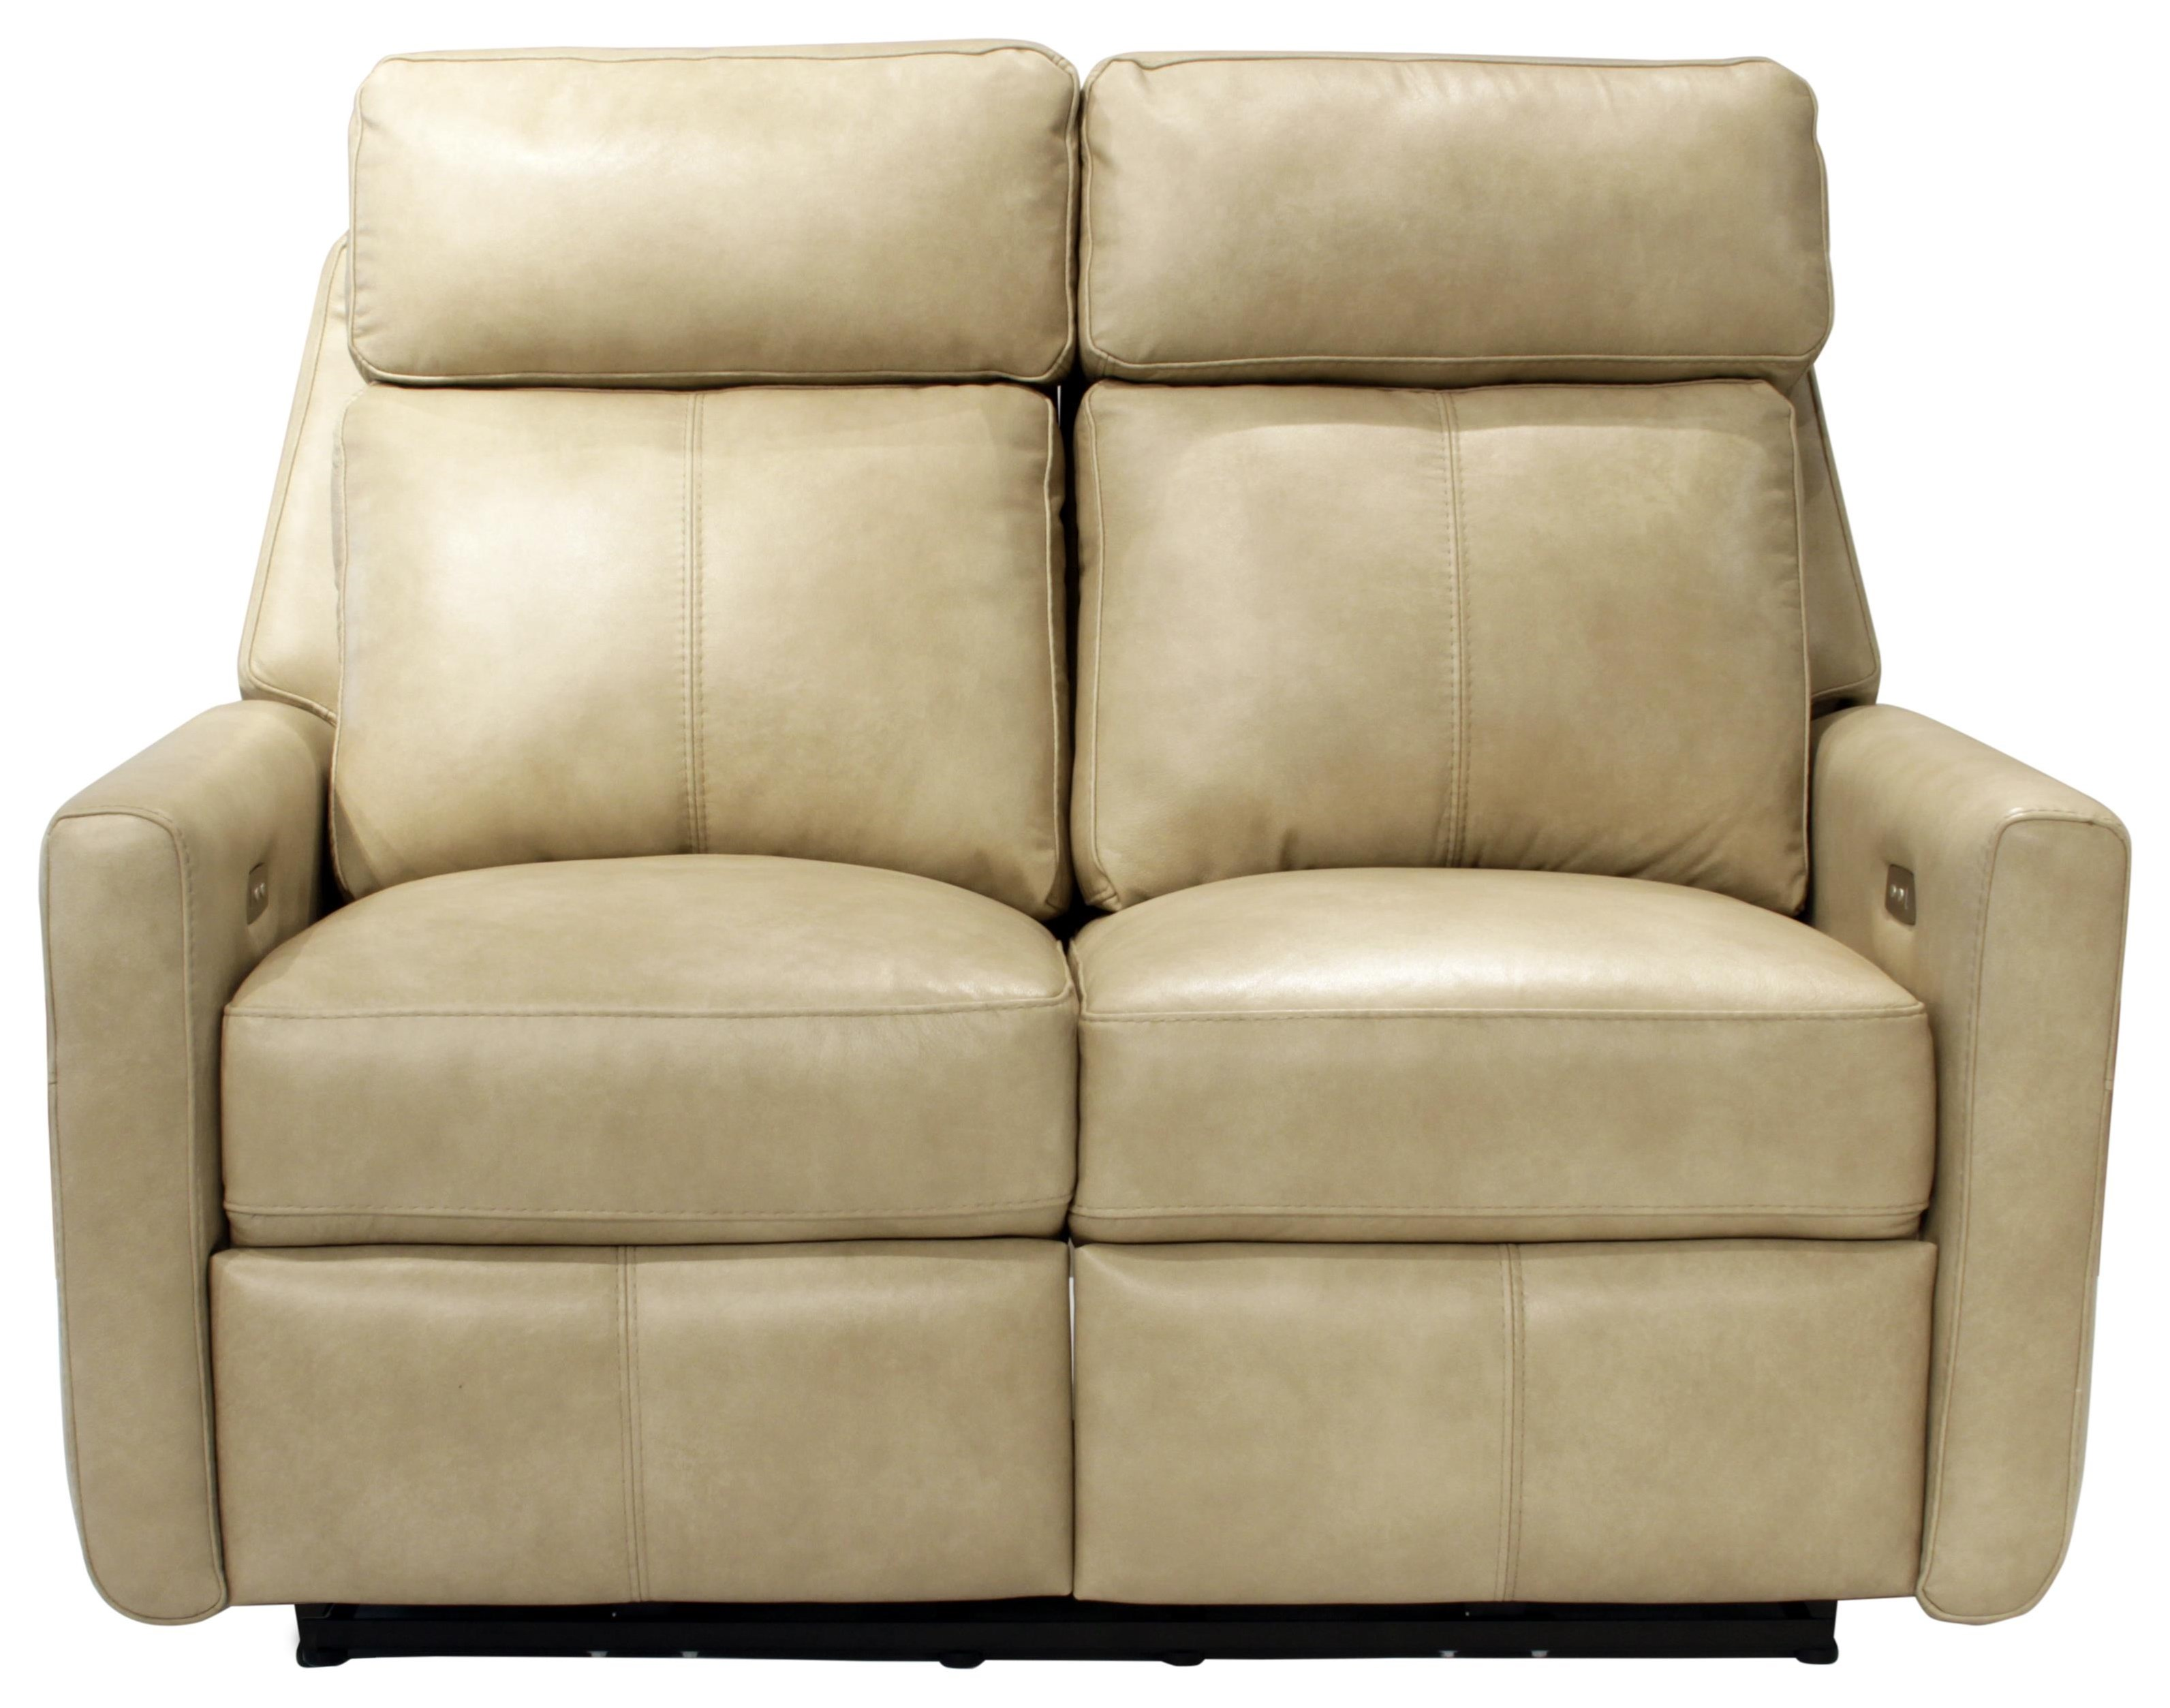 Omnia Leather Riverside Drive Power Reclining Loveseat   Item Number: 53113